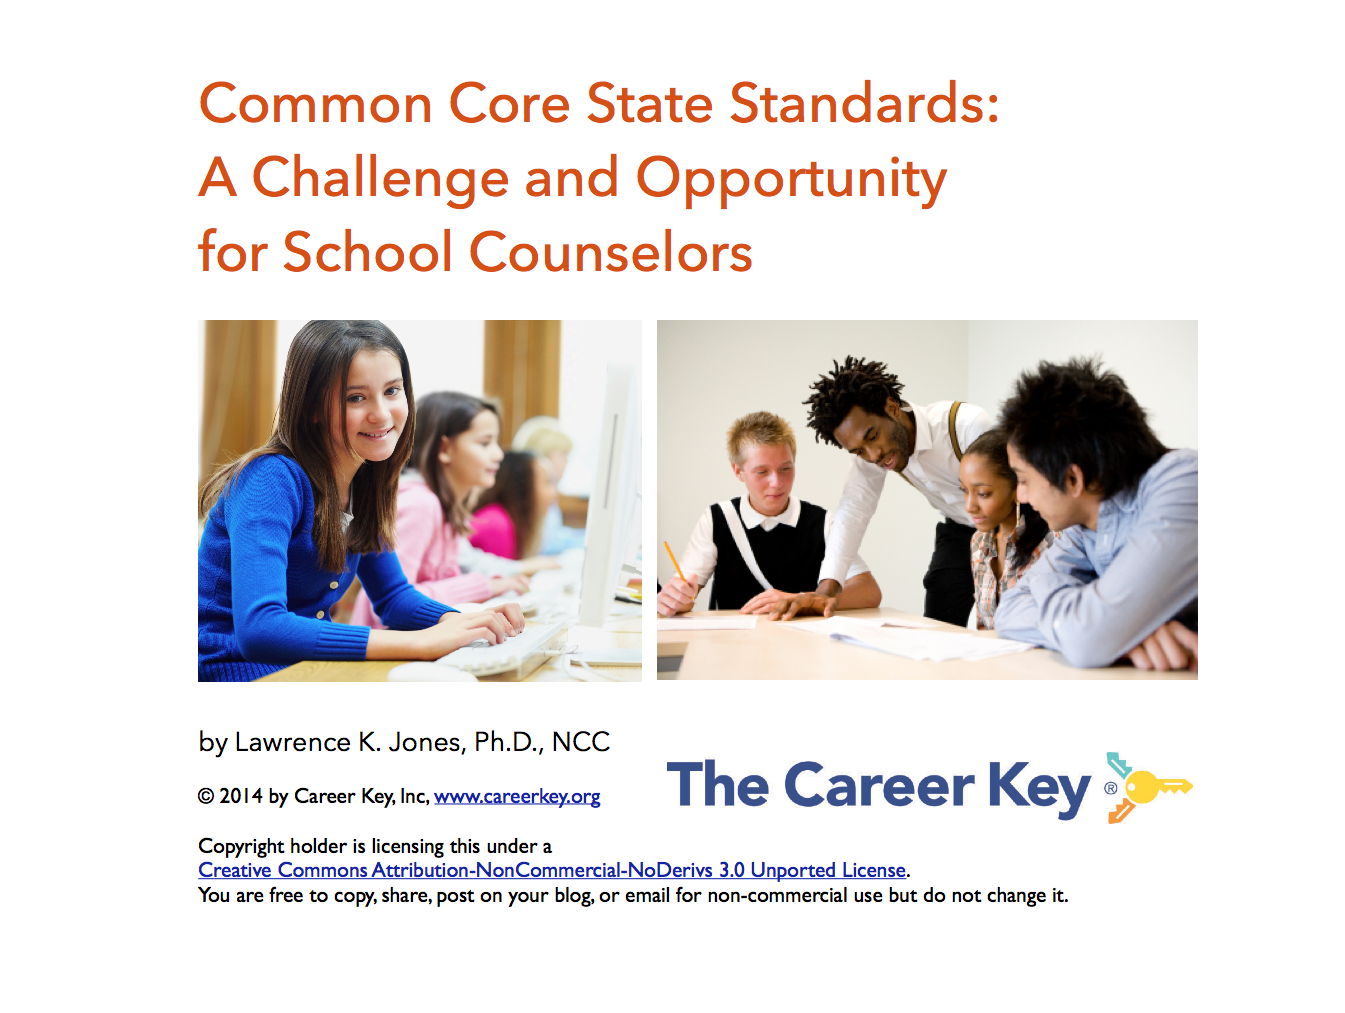 Common Core Standards Are A Challenge And Opportunity For